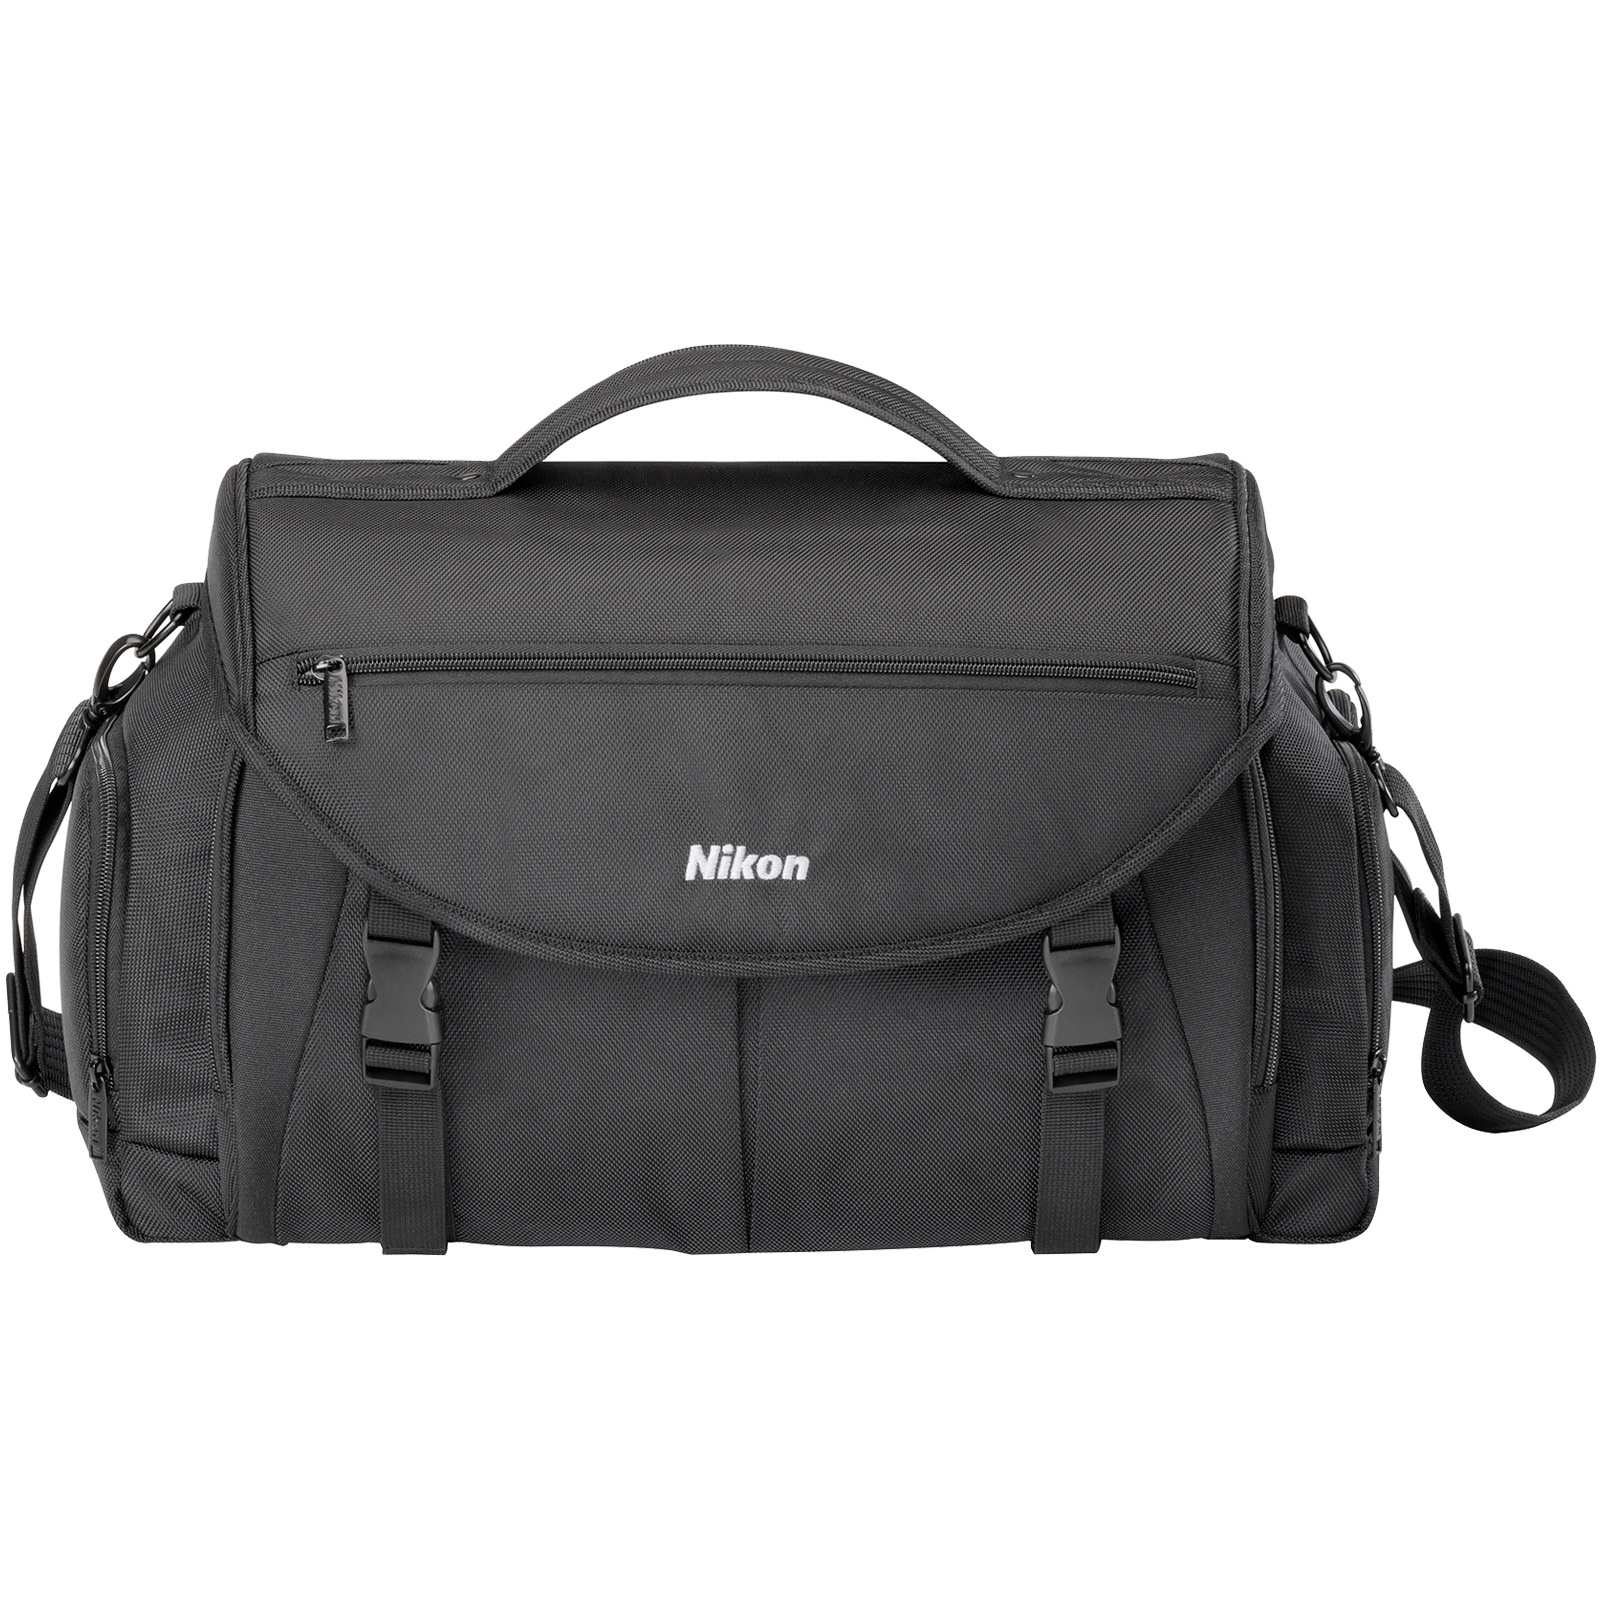 Click here to buy Nikon 17008 Large Pro DSLR Camera Bag by Nikon.